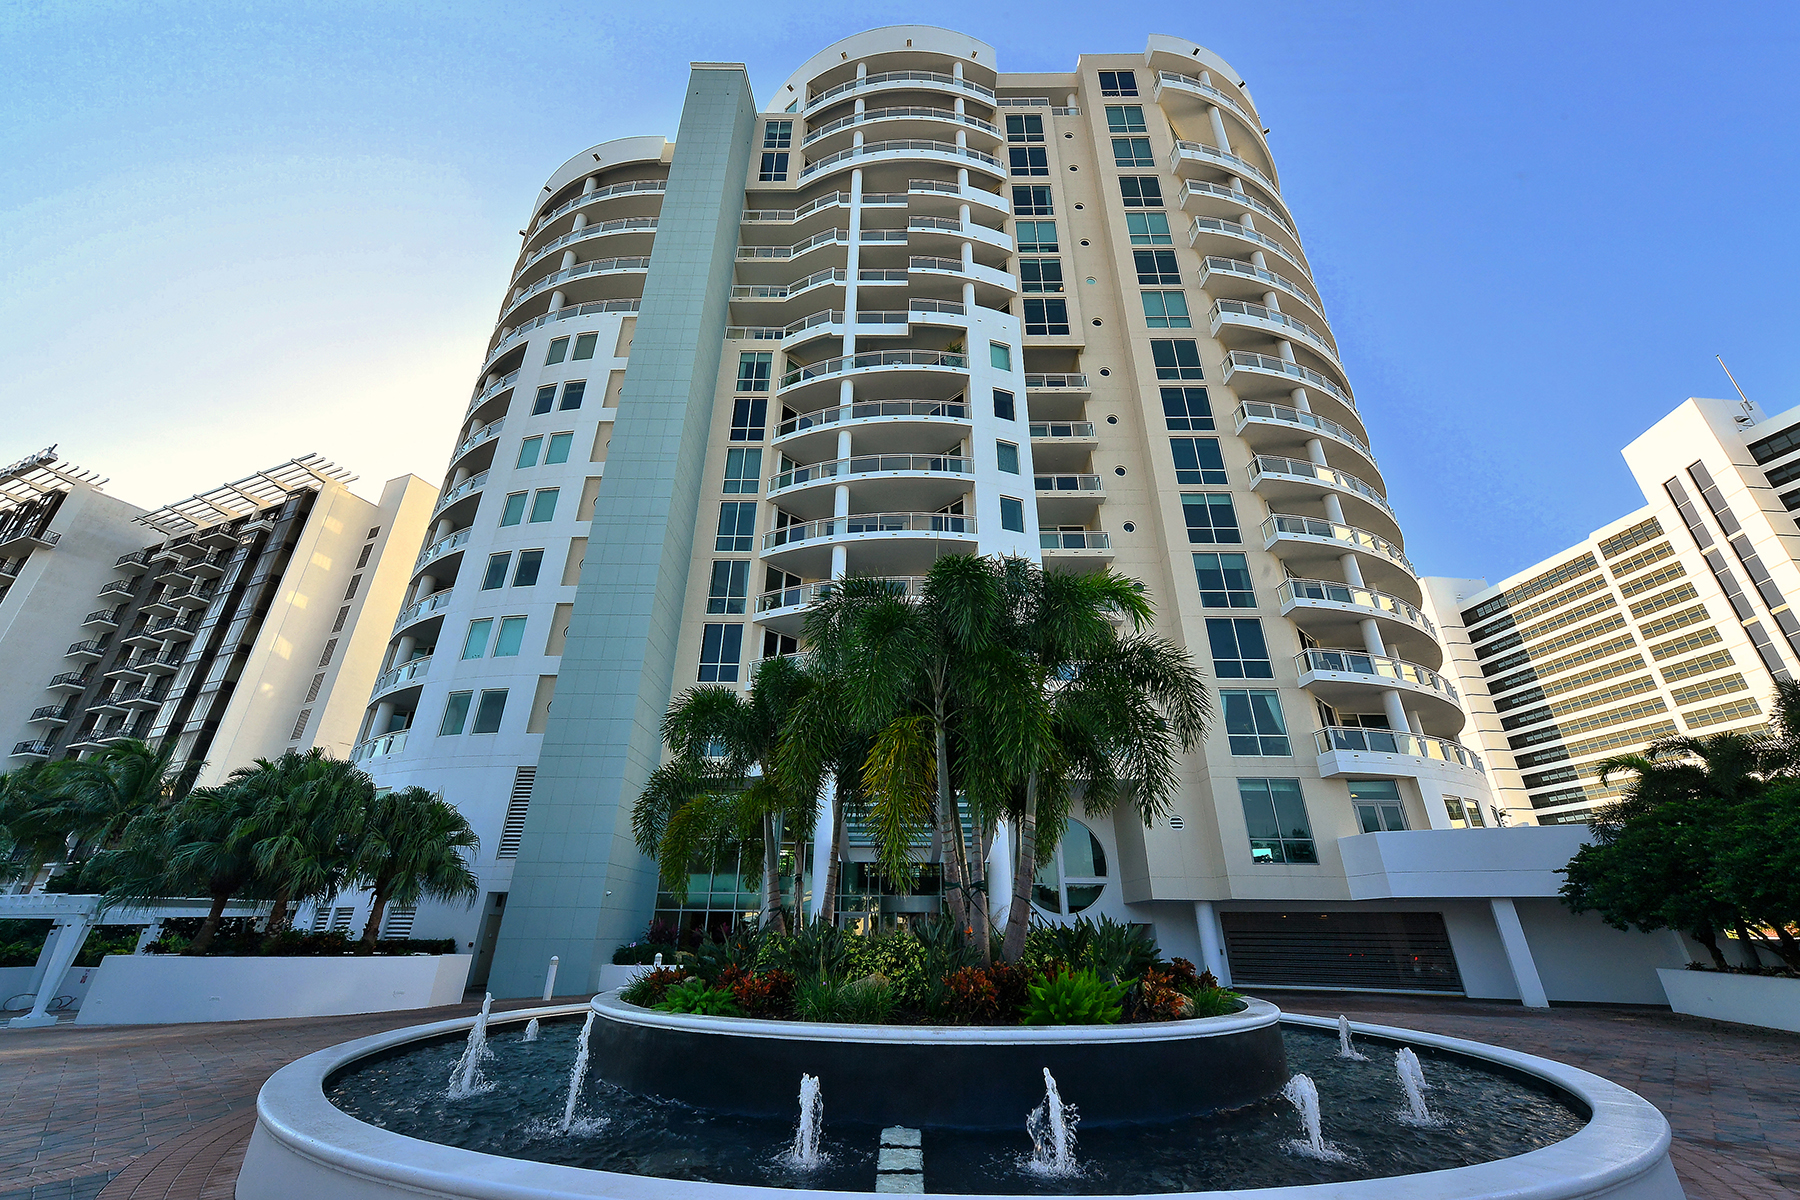 Condominium for Sale at BEAU CIEL 990 Blvd Of The Arts 802 Sarasota, Florida 34236 United States